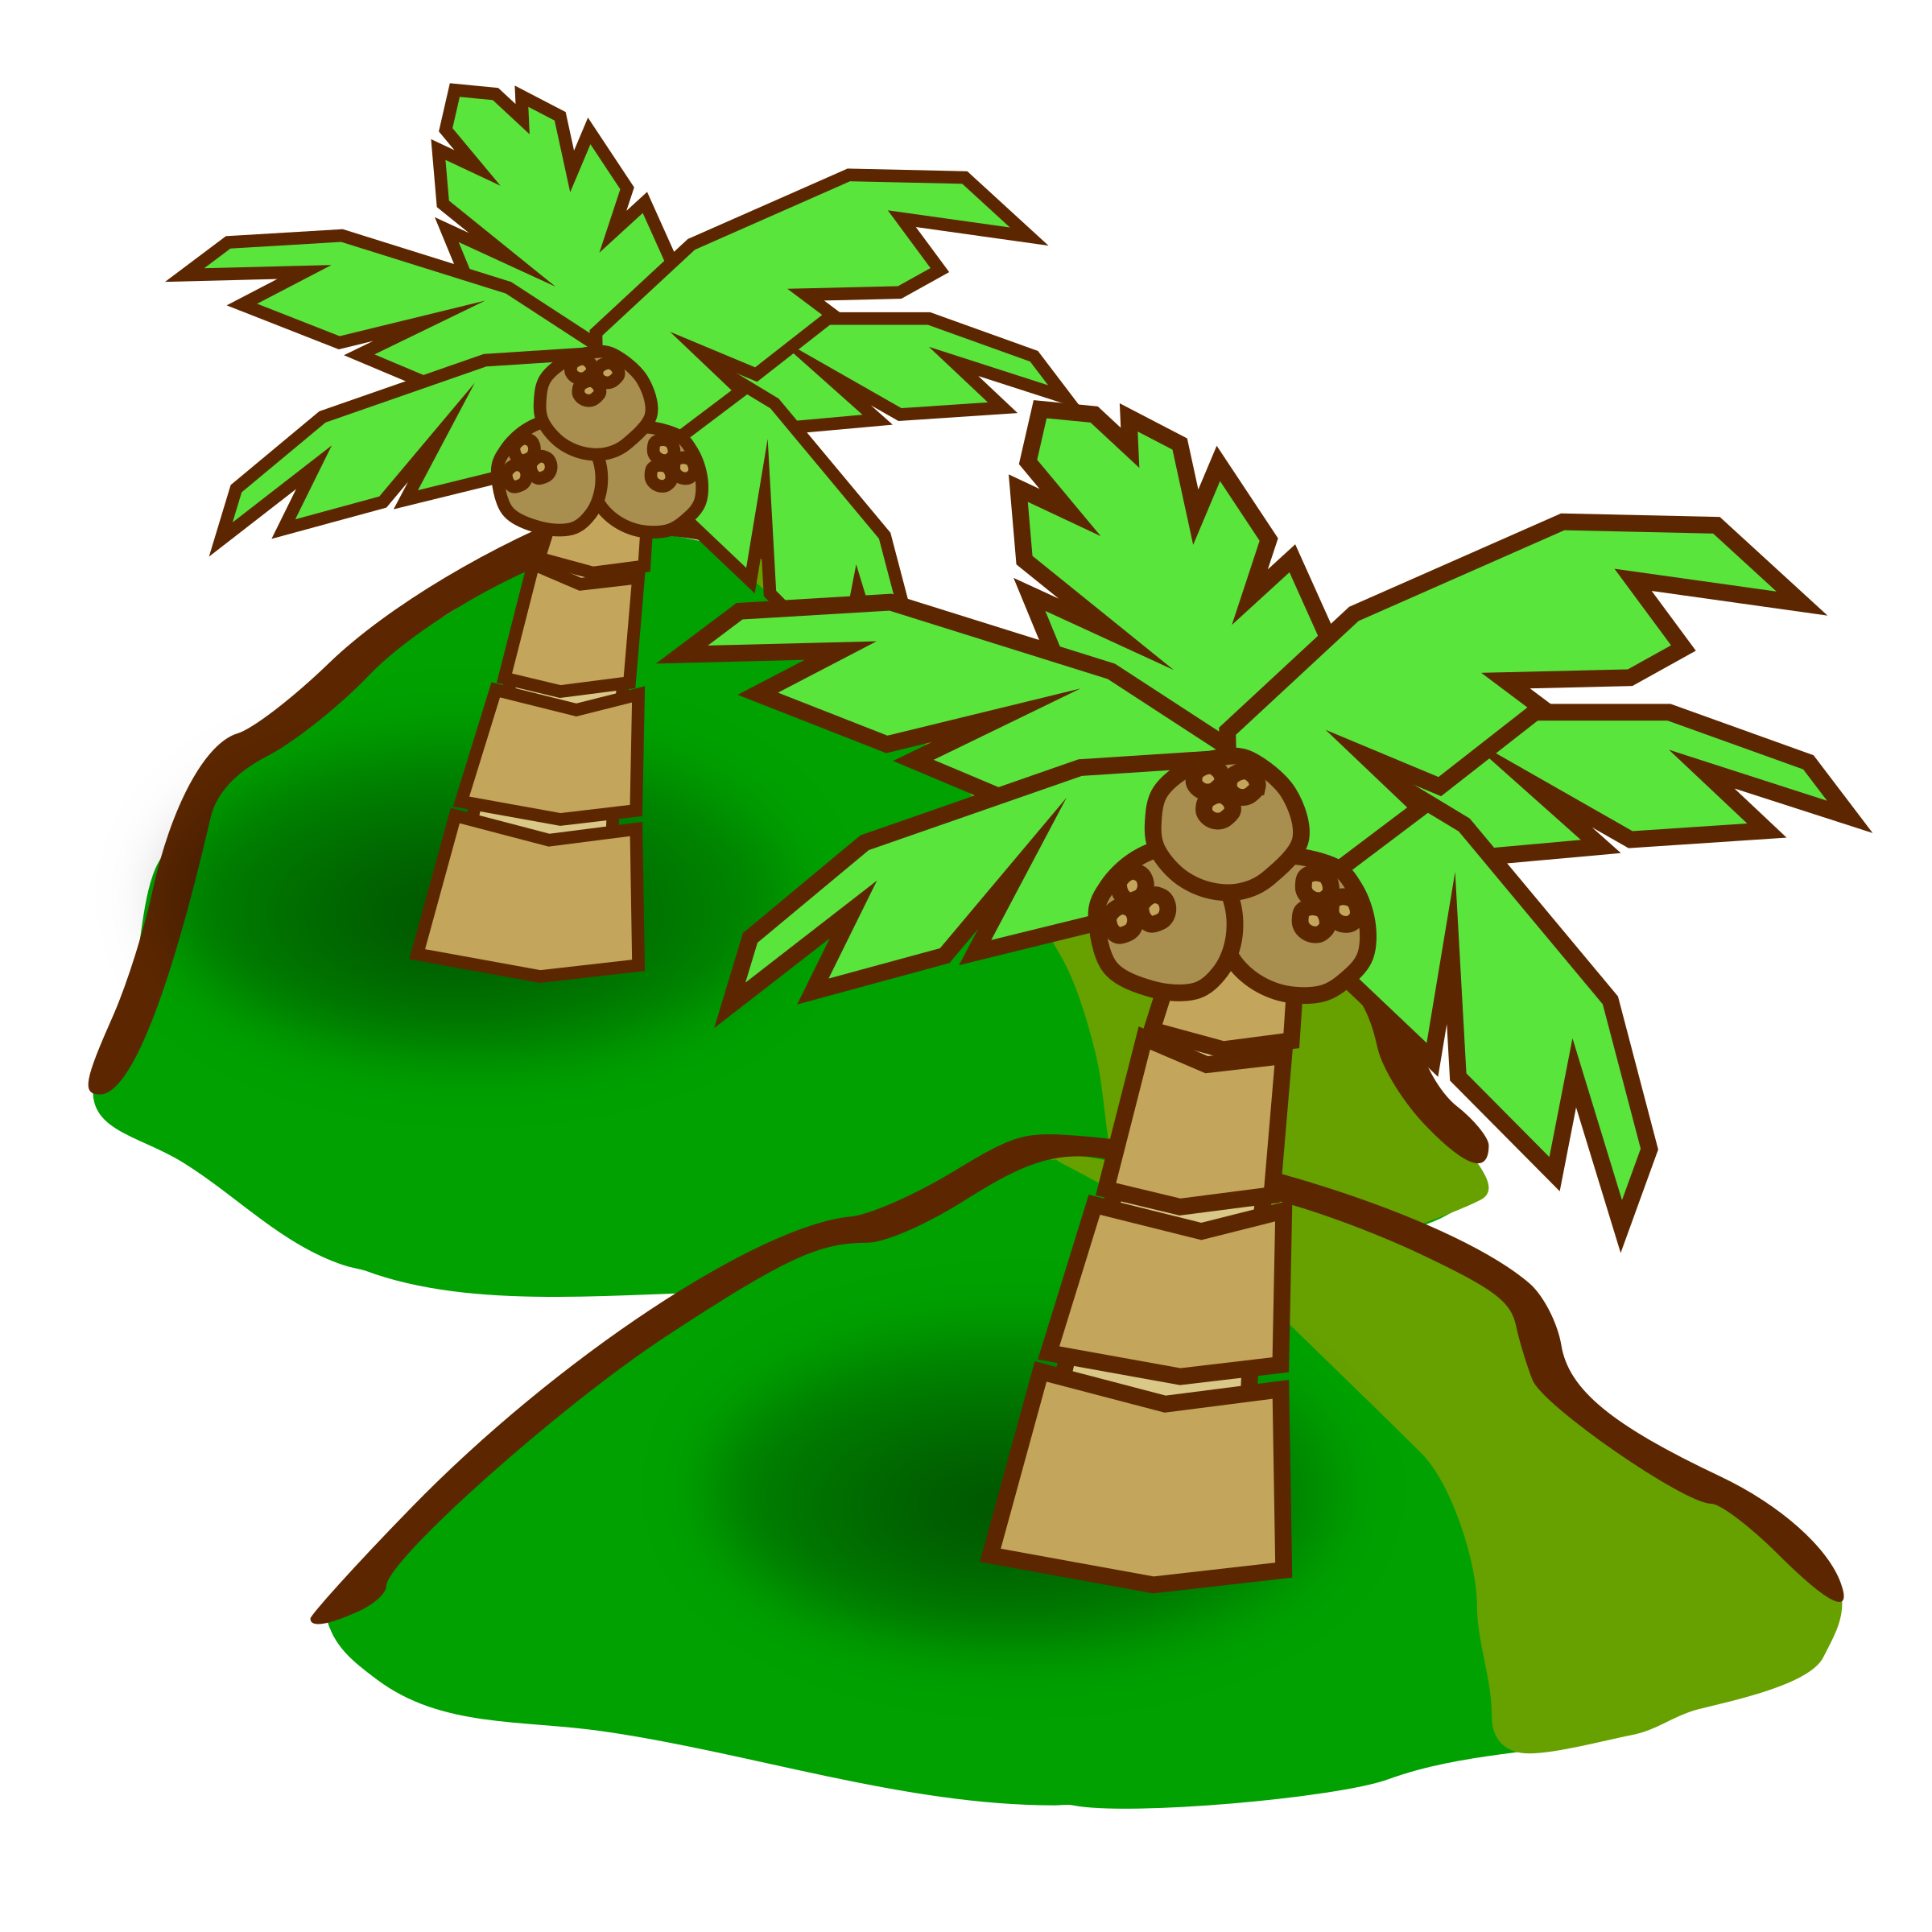 Jungle big image png. Hills clipart transparent